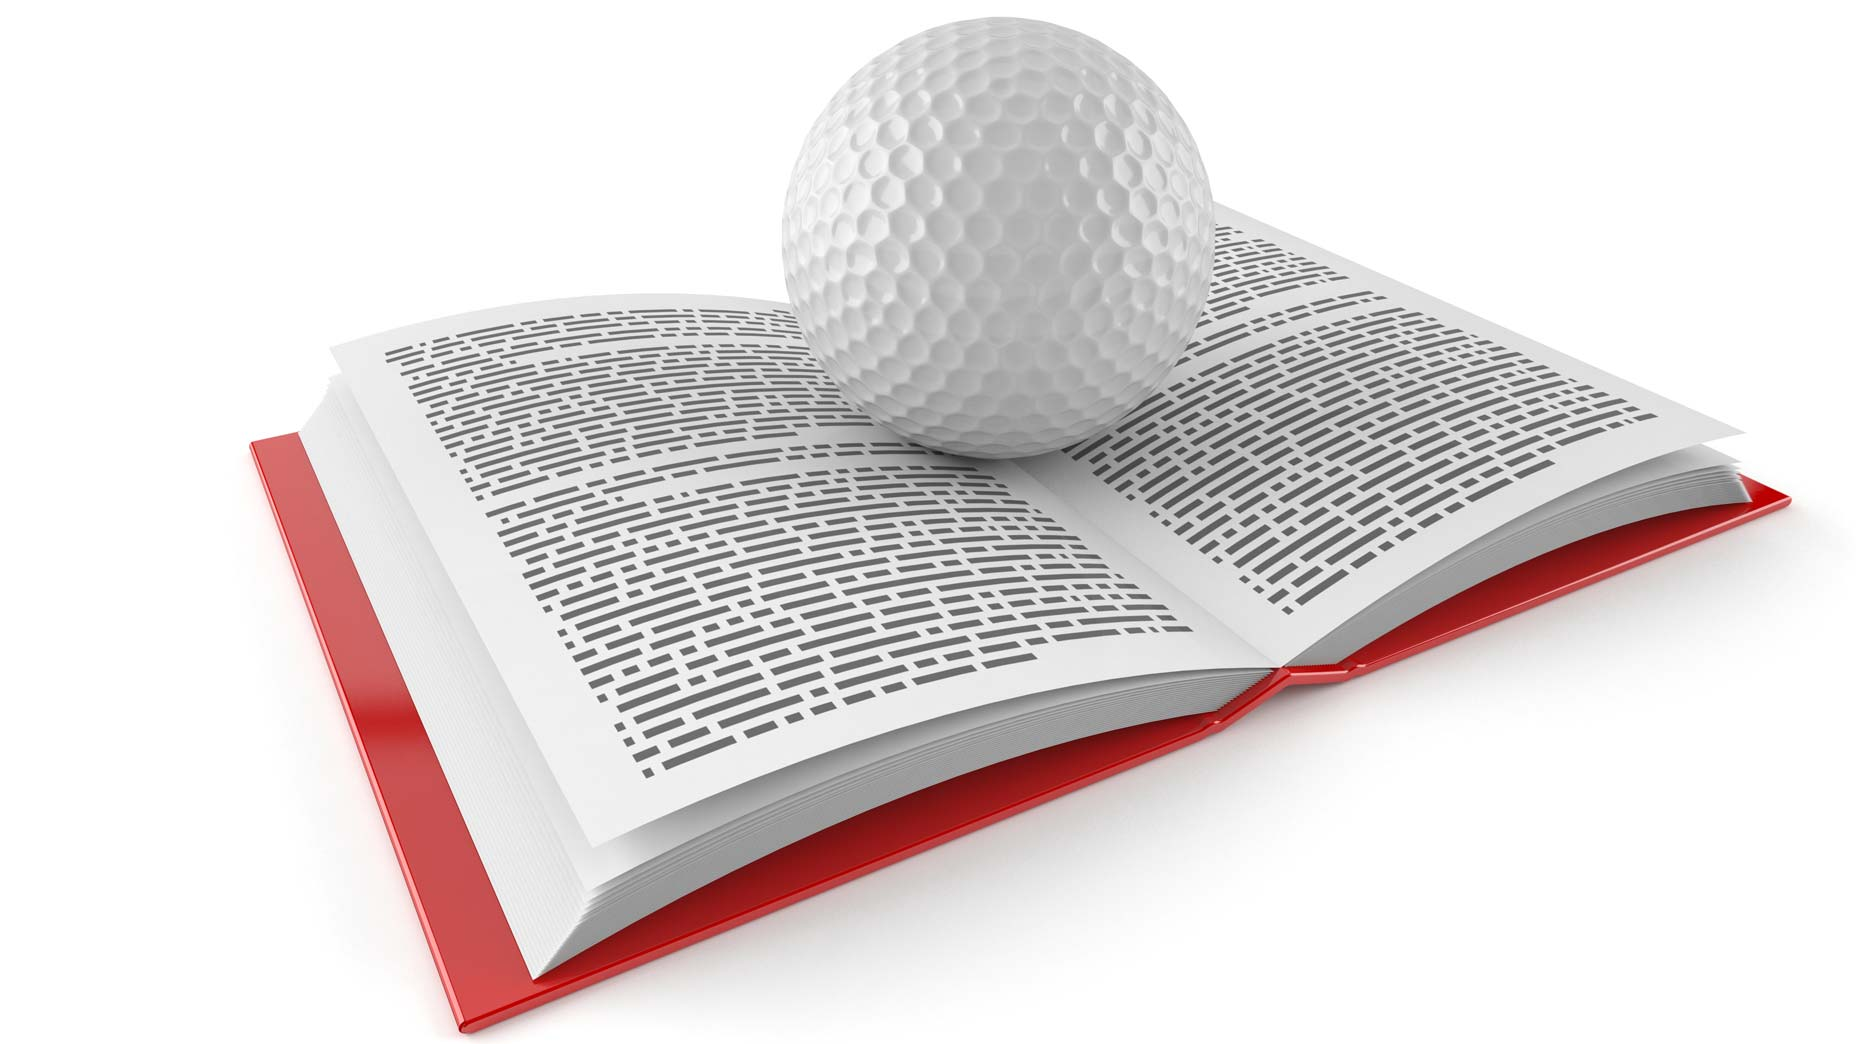 golf ball on a book